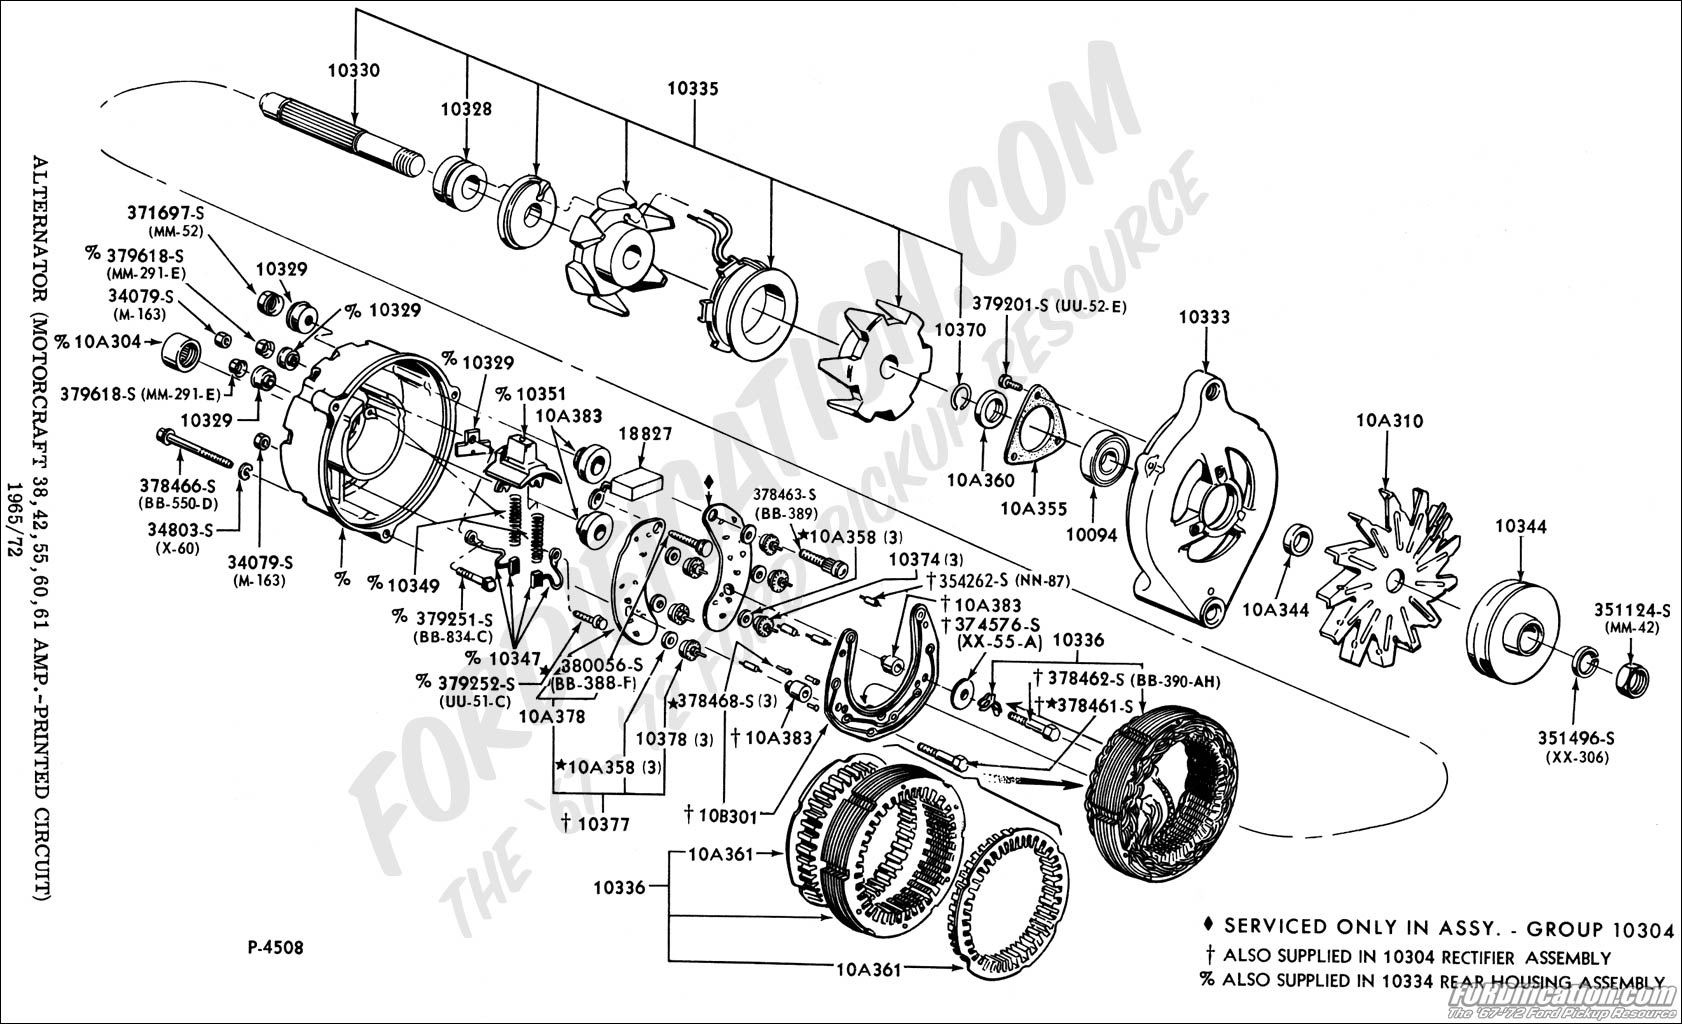 alternator guts diagram